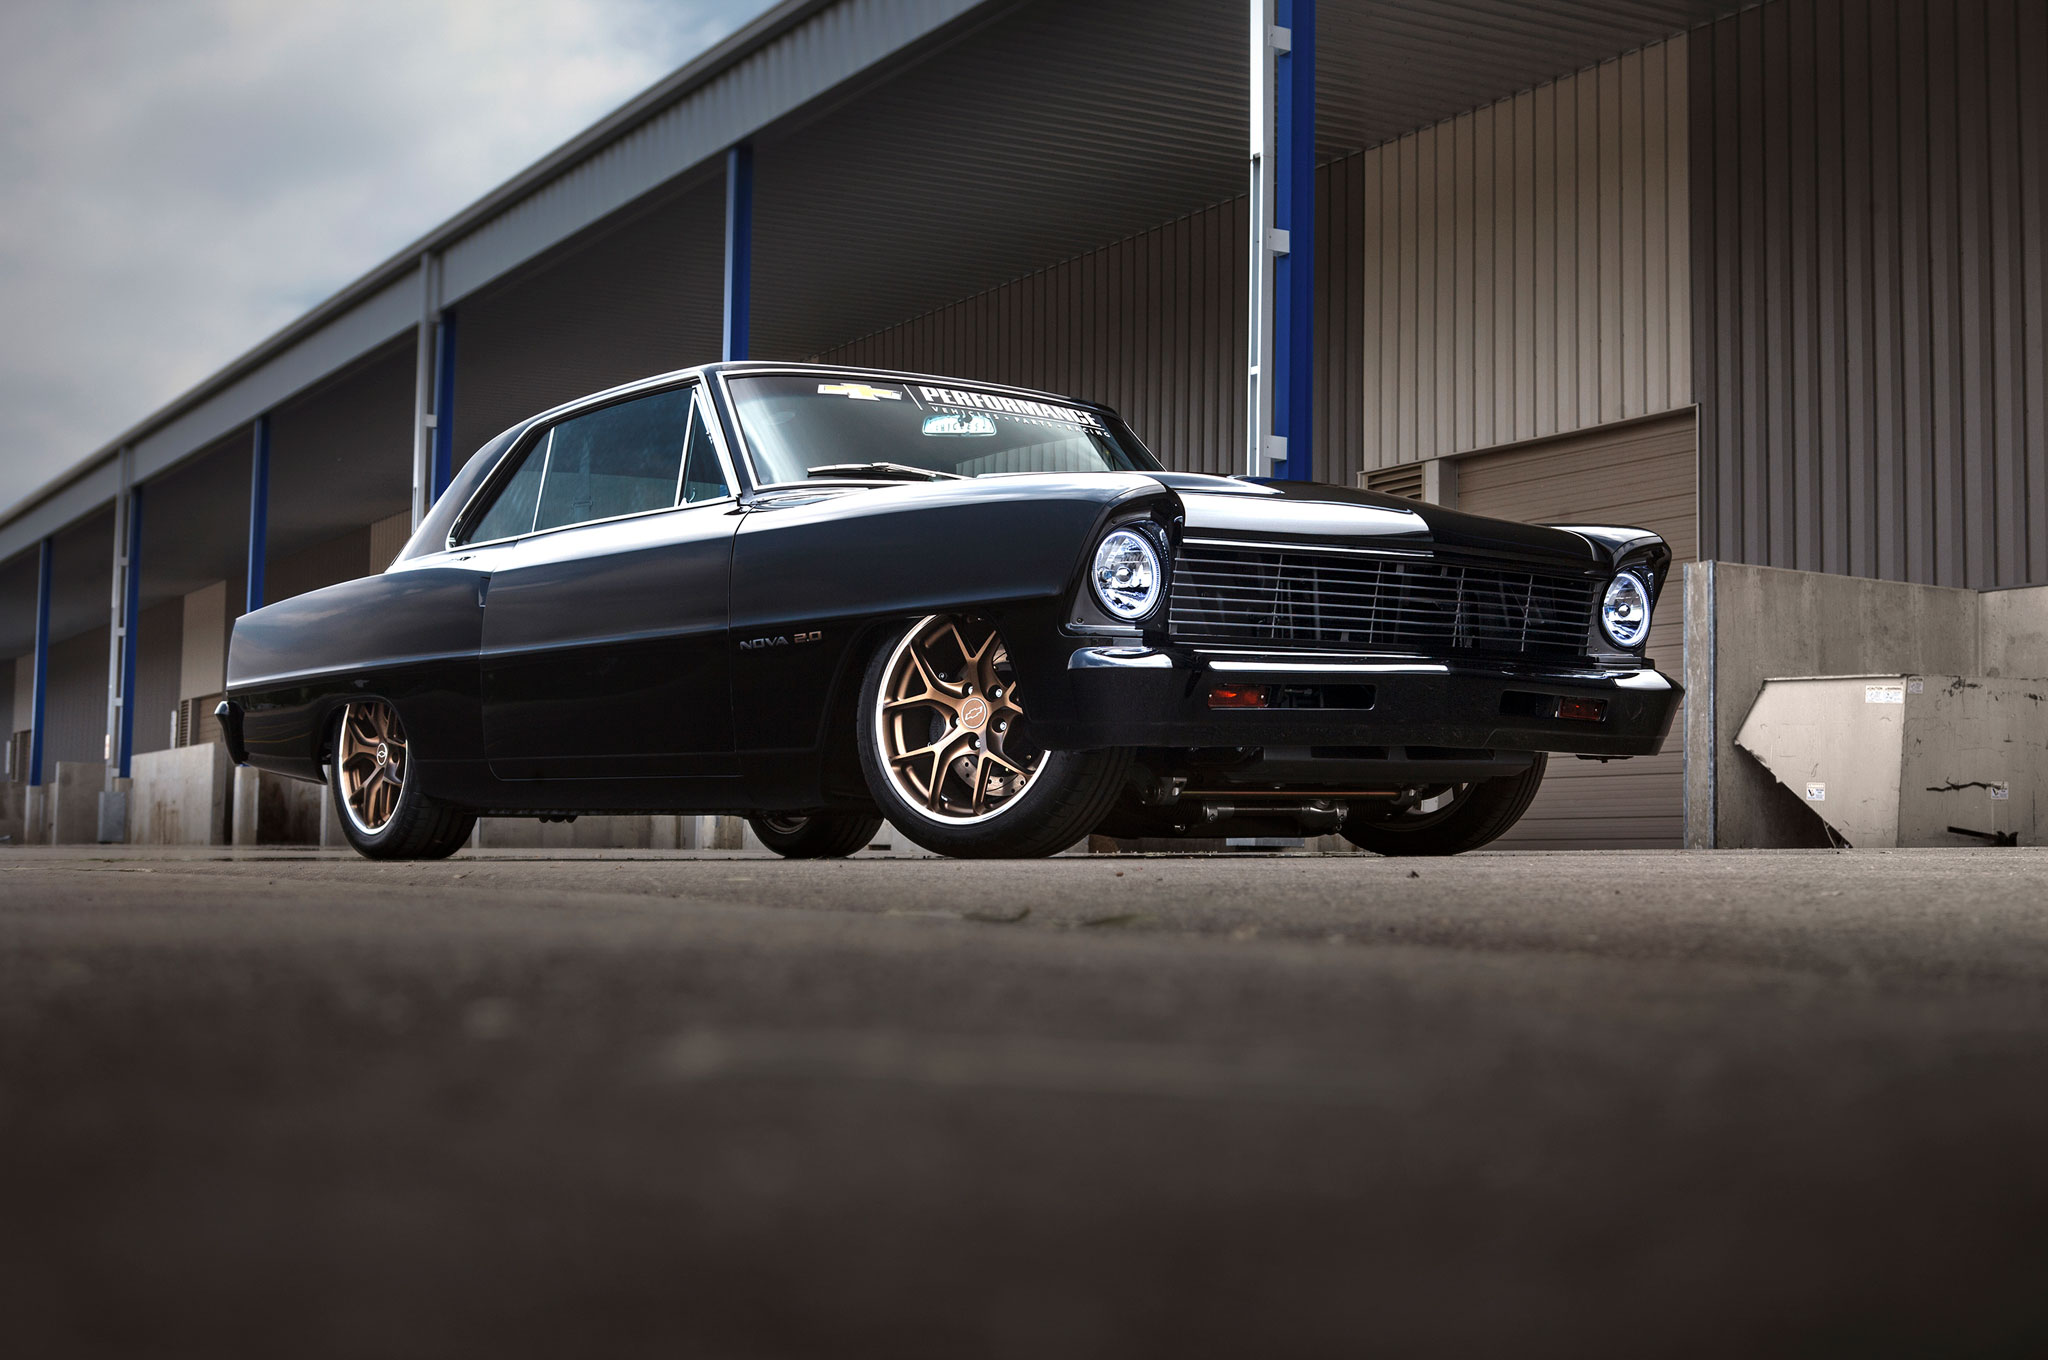 Cool Muscle Cars >> SEMA-Bound 1967 Chevrolet Nova Showcases Turbocharged Crate Engine